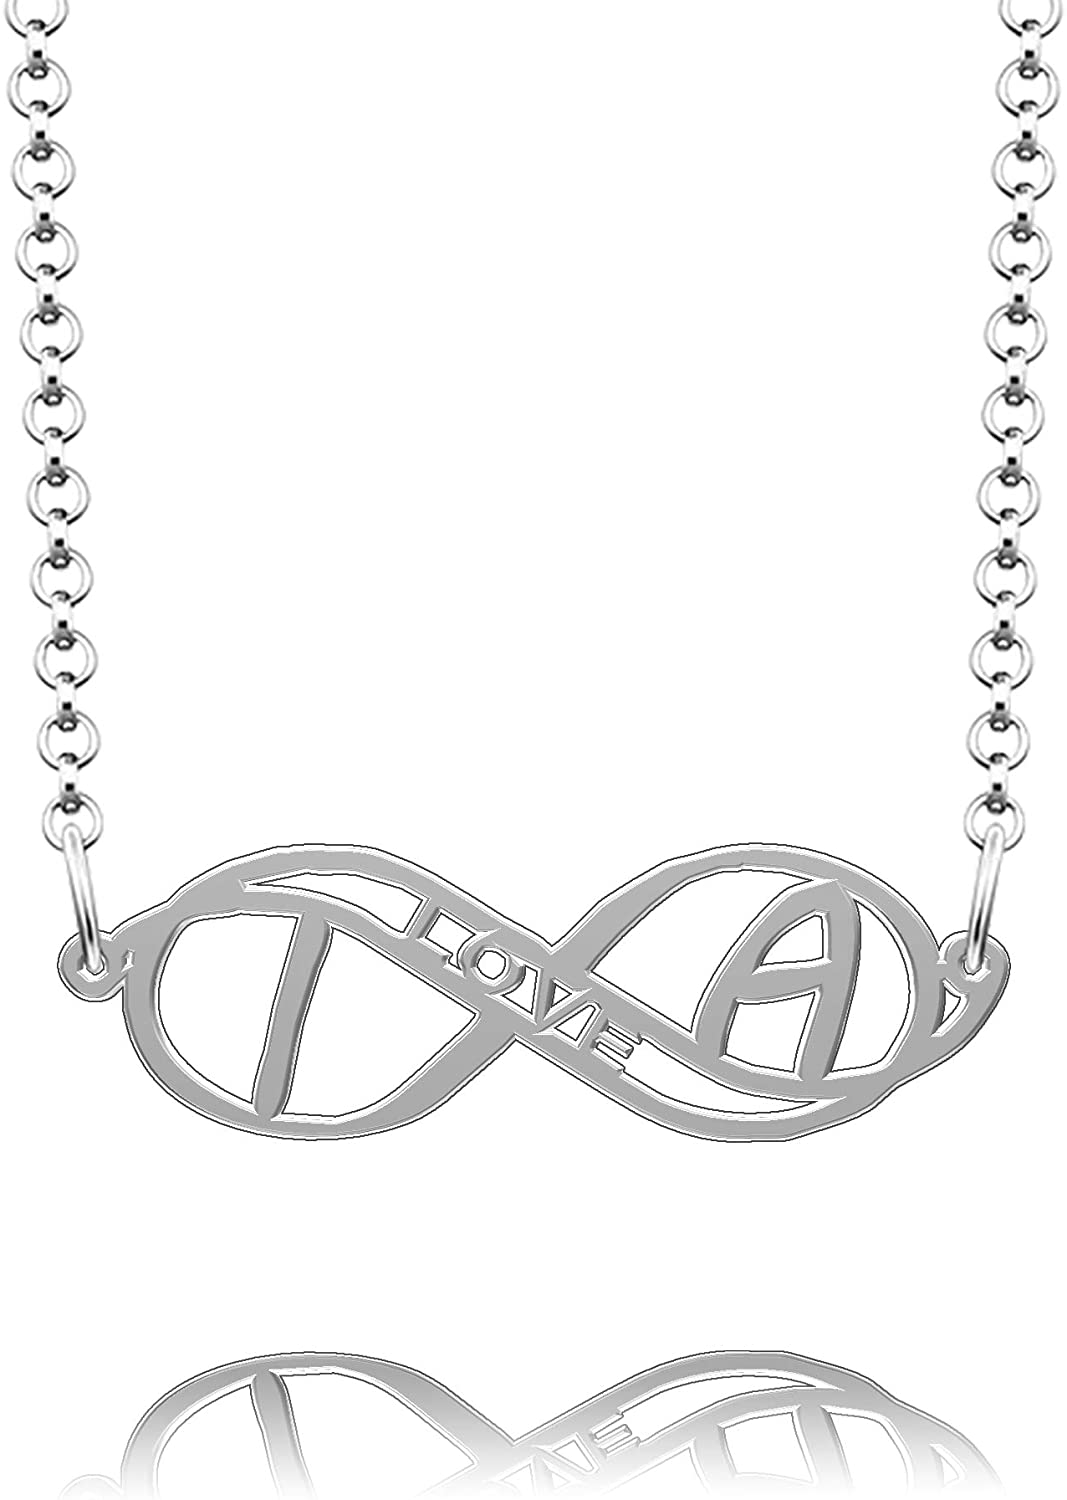 CLY Jewelry Sterling Silver Love Infinity Heart Initial Monogram Customized Any Name Necklace Gift for Christmas